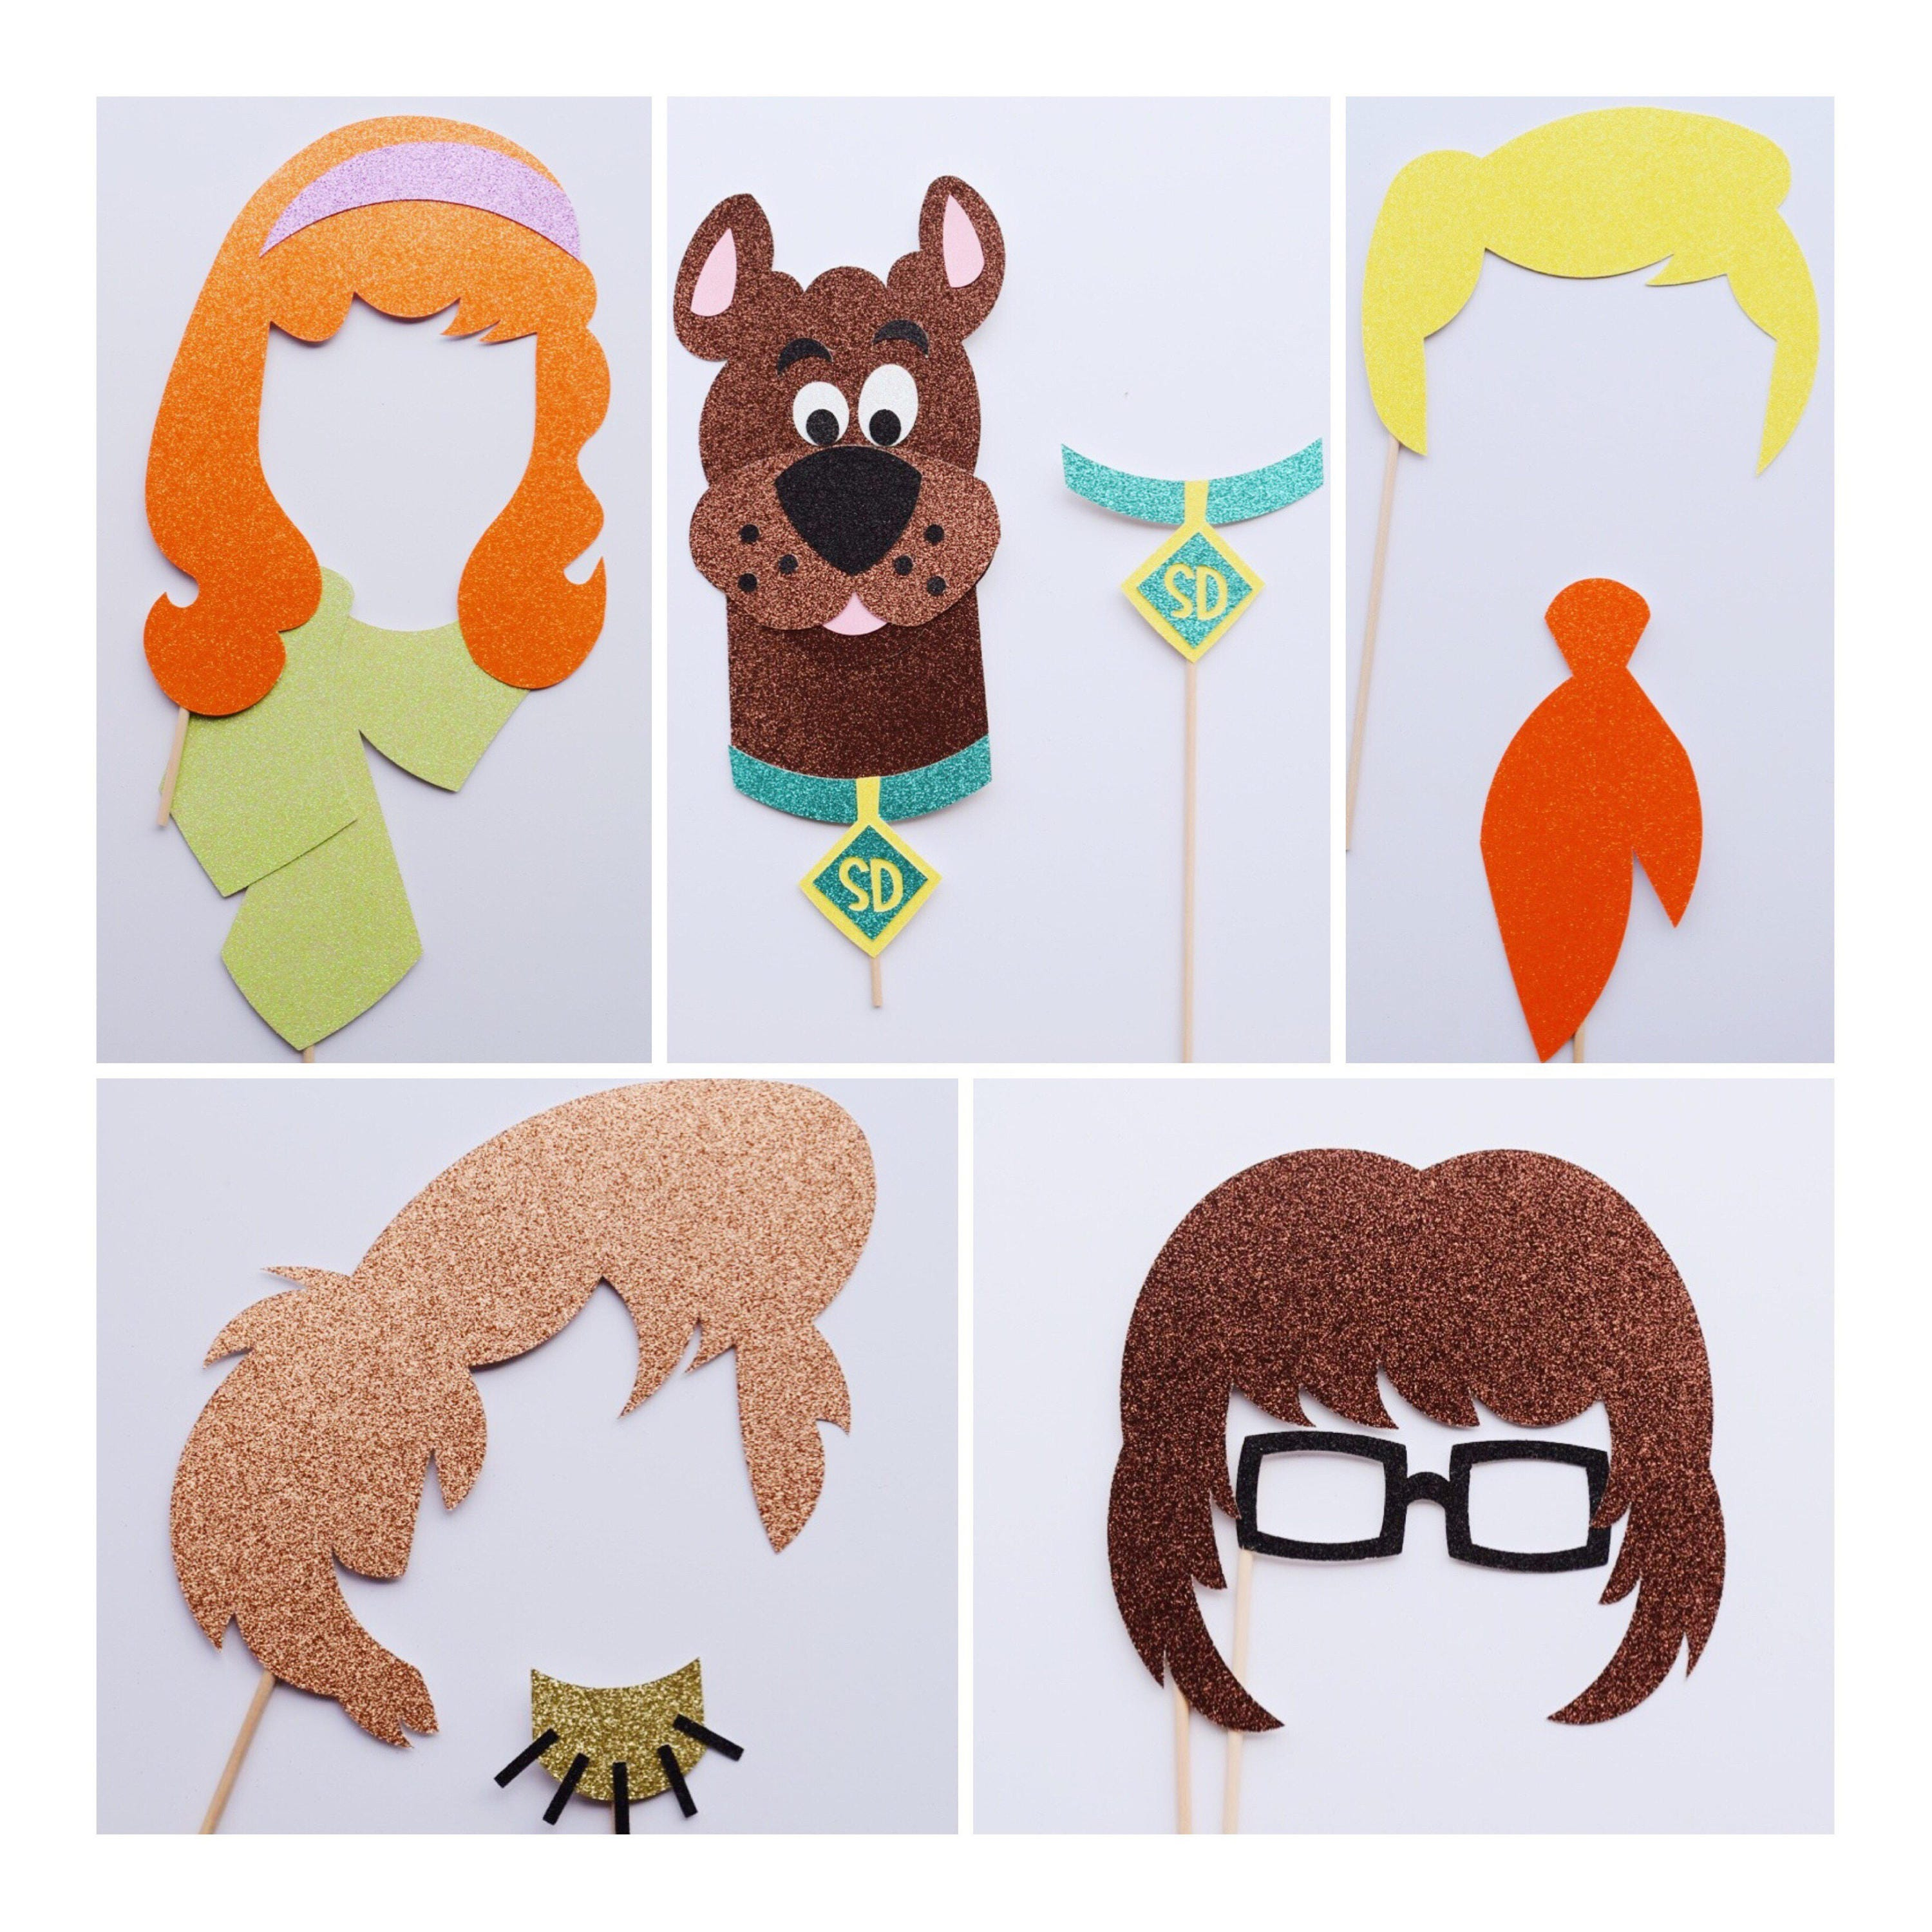 Scooby Doo Bedroom Accessories Scooby Doo Decor Etsy